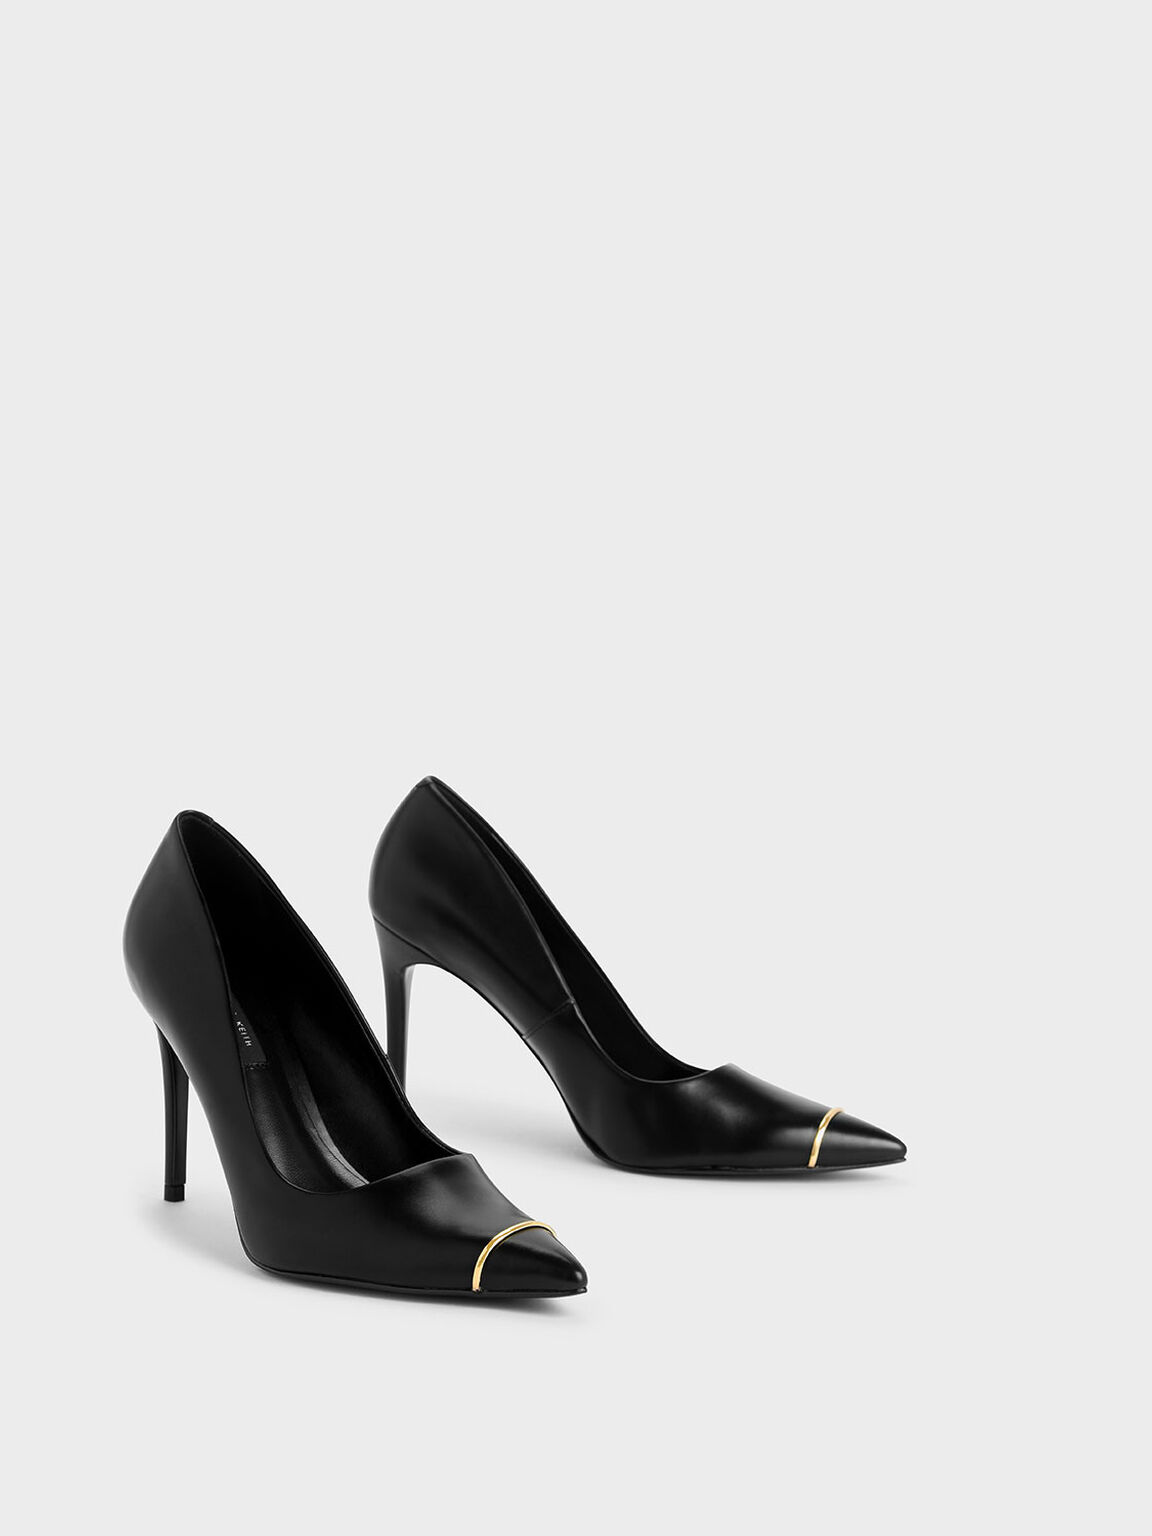 Metallic Accent Pointed Toe Stiletto Pumps, Black, hi-res